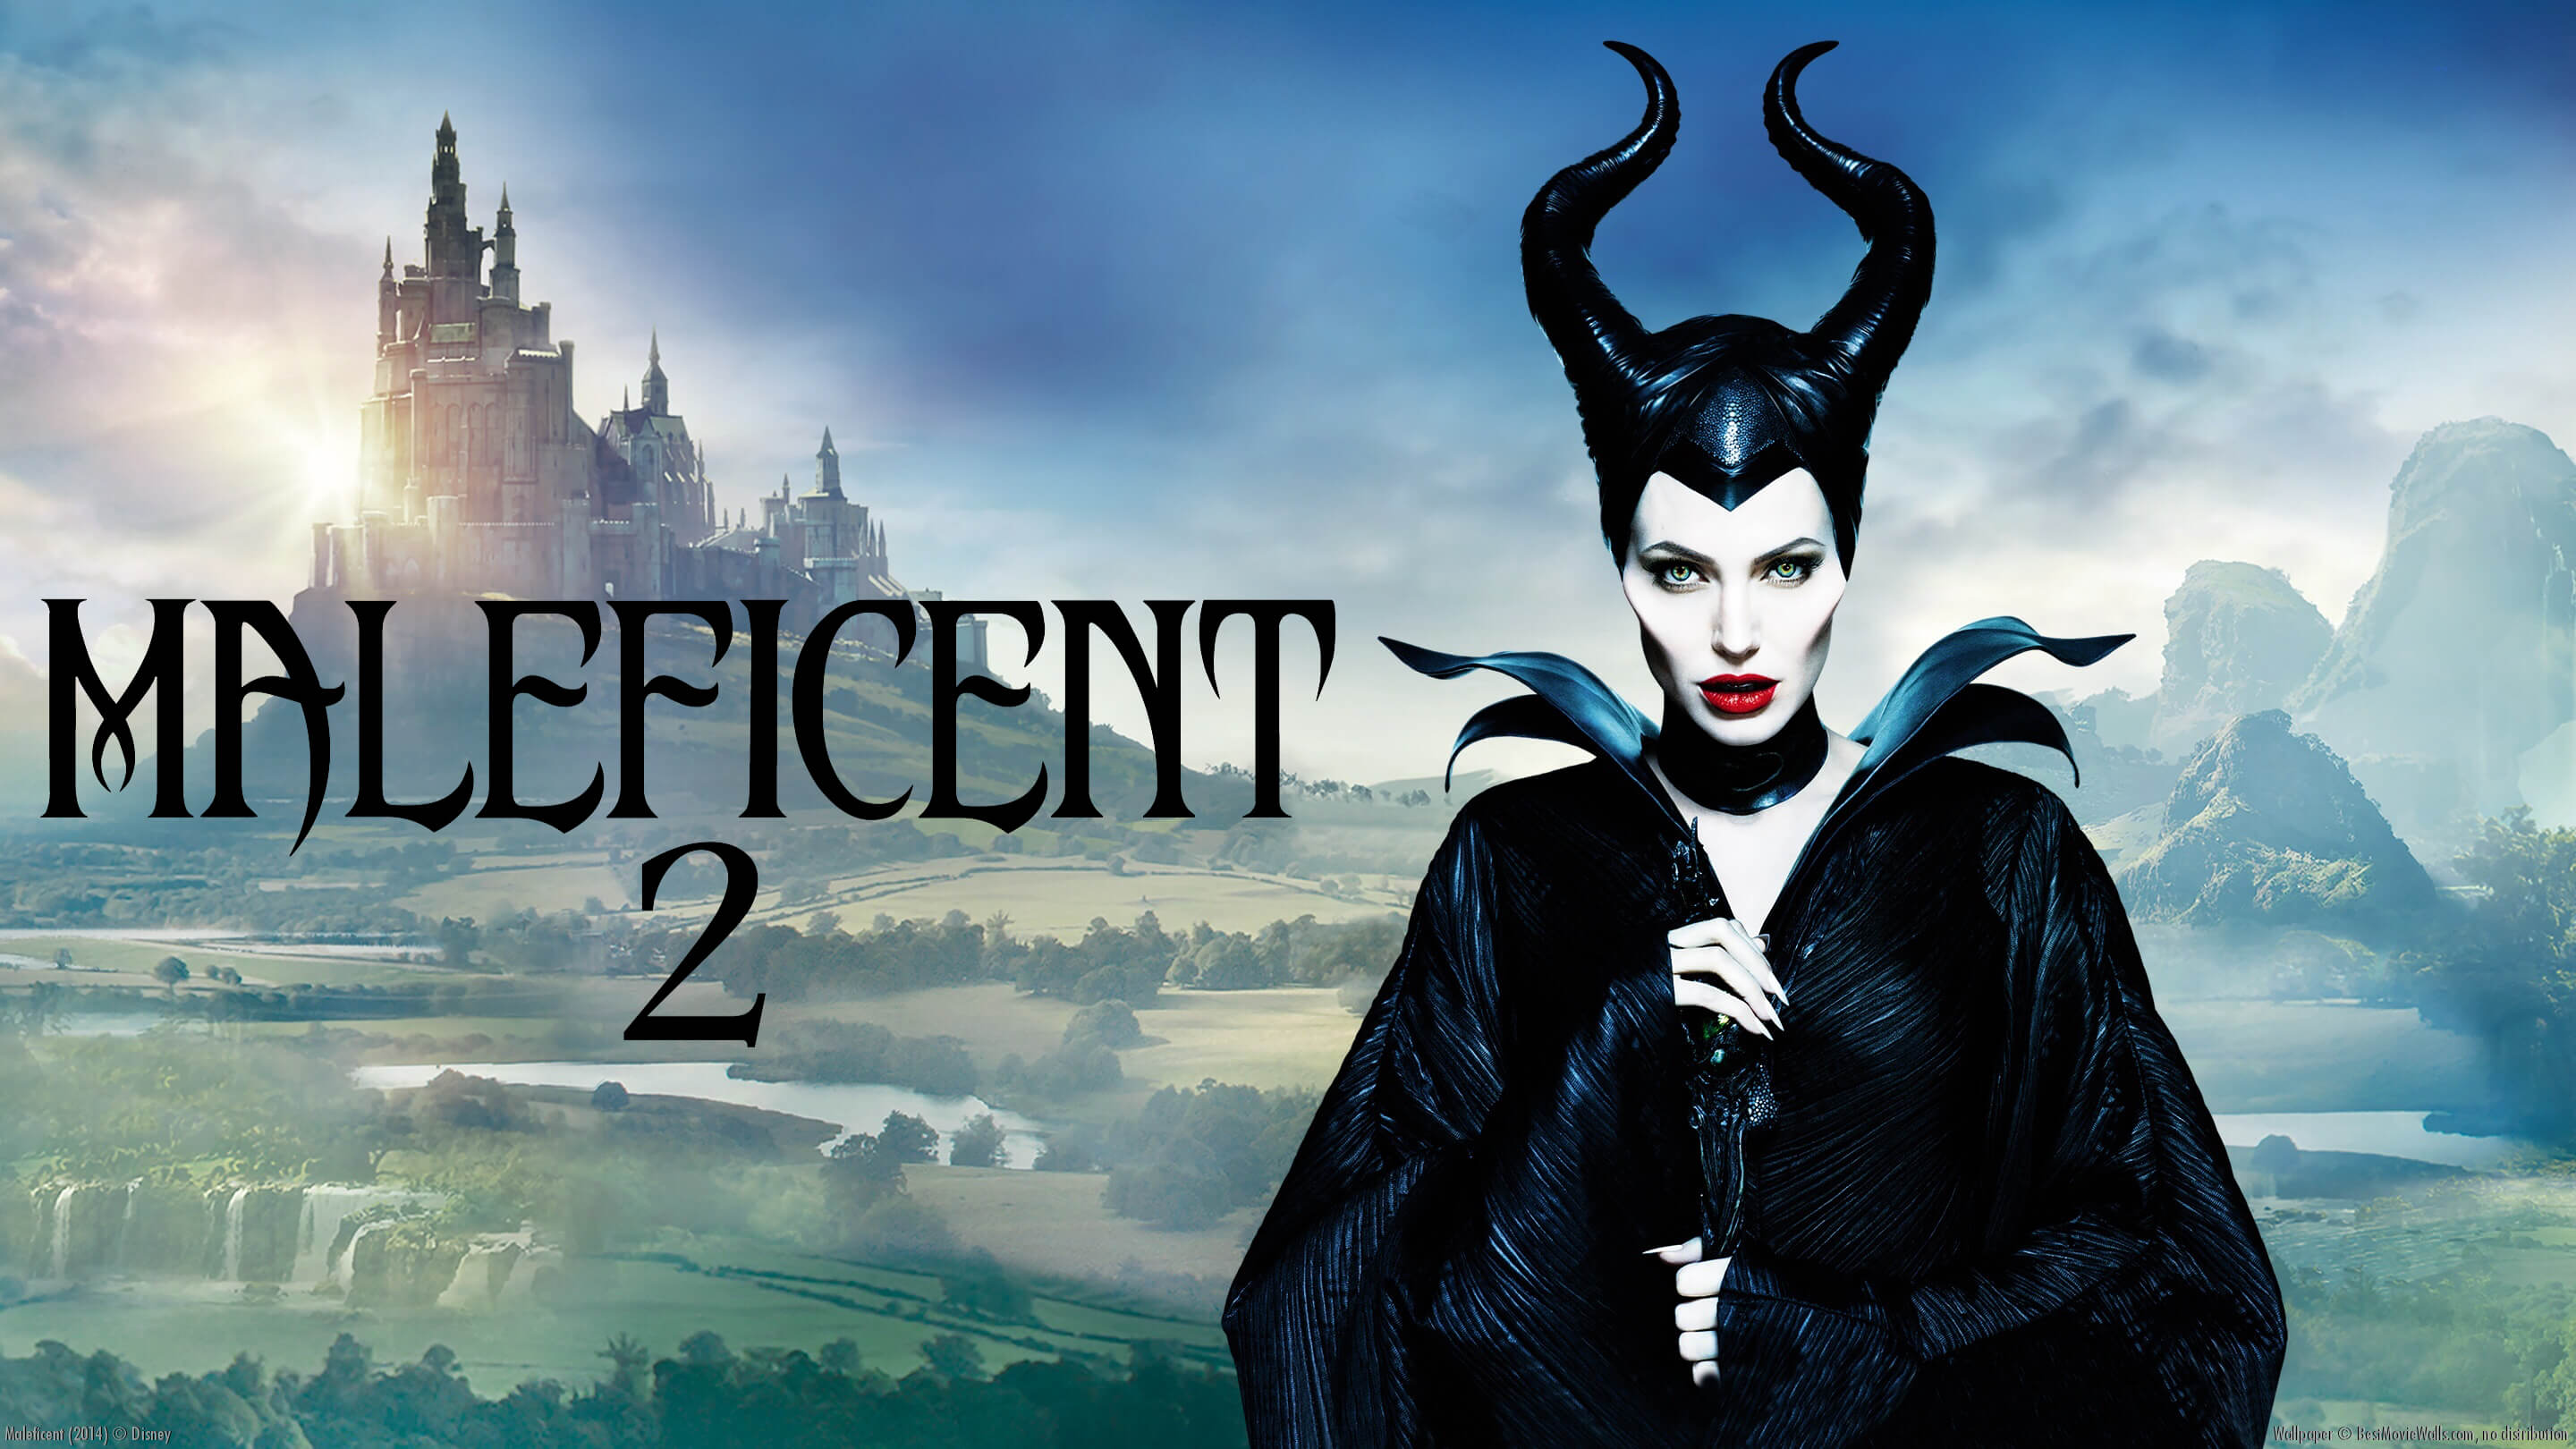 Maleficent 2 To Begin Production In April